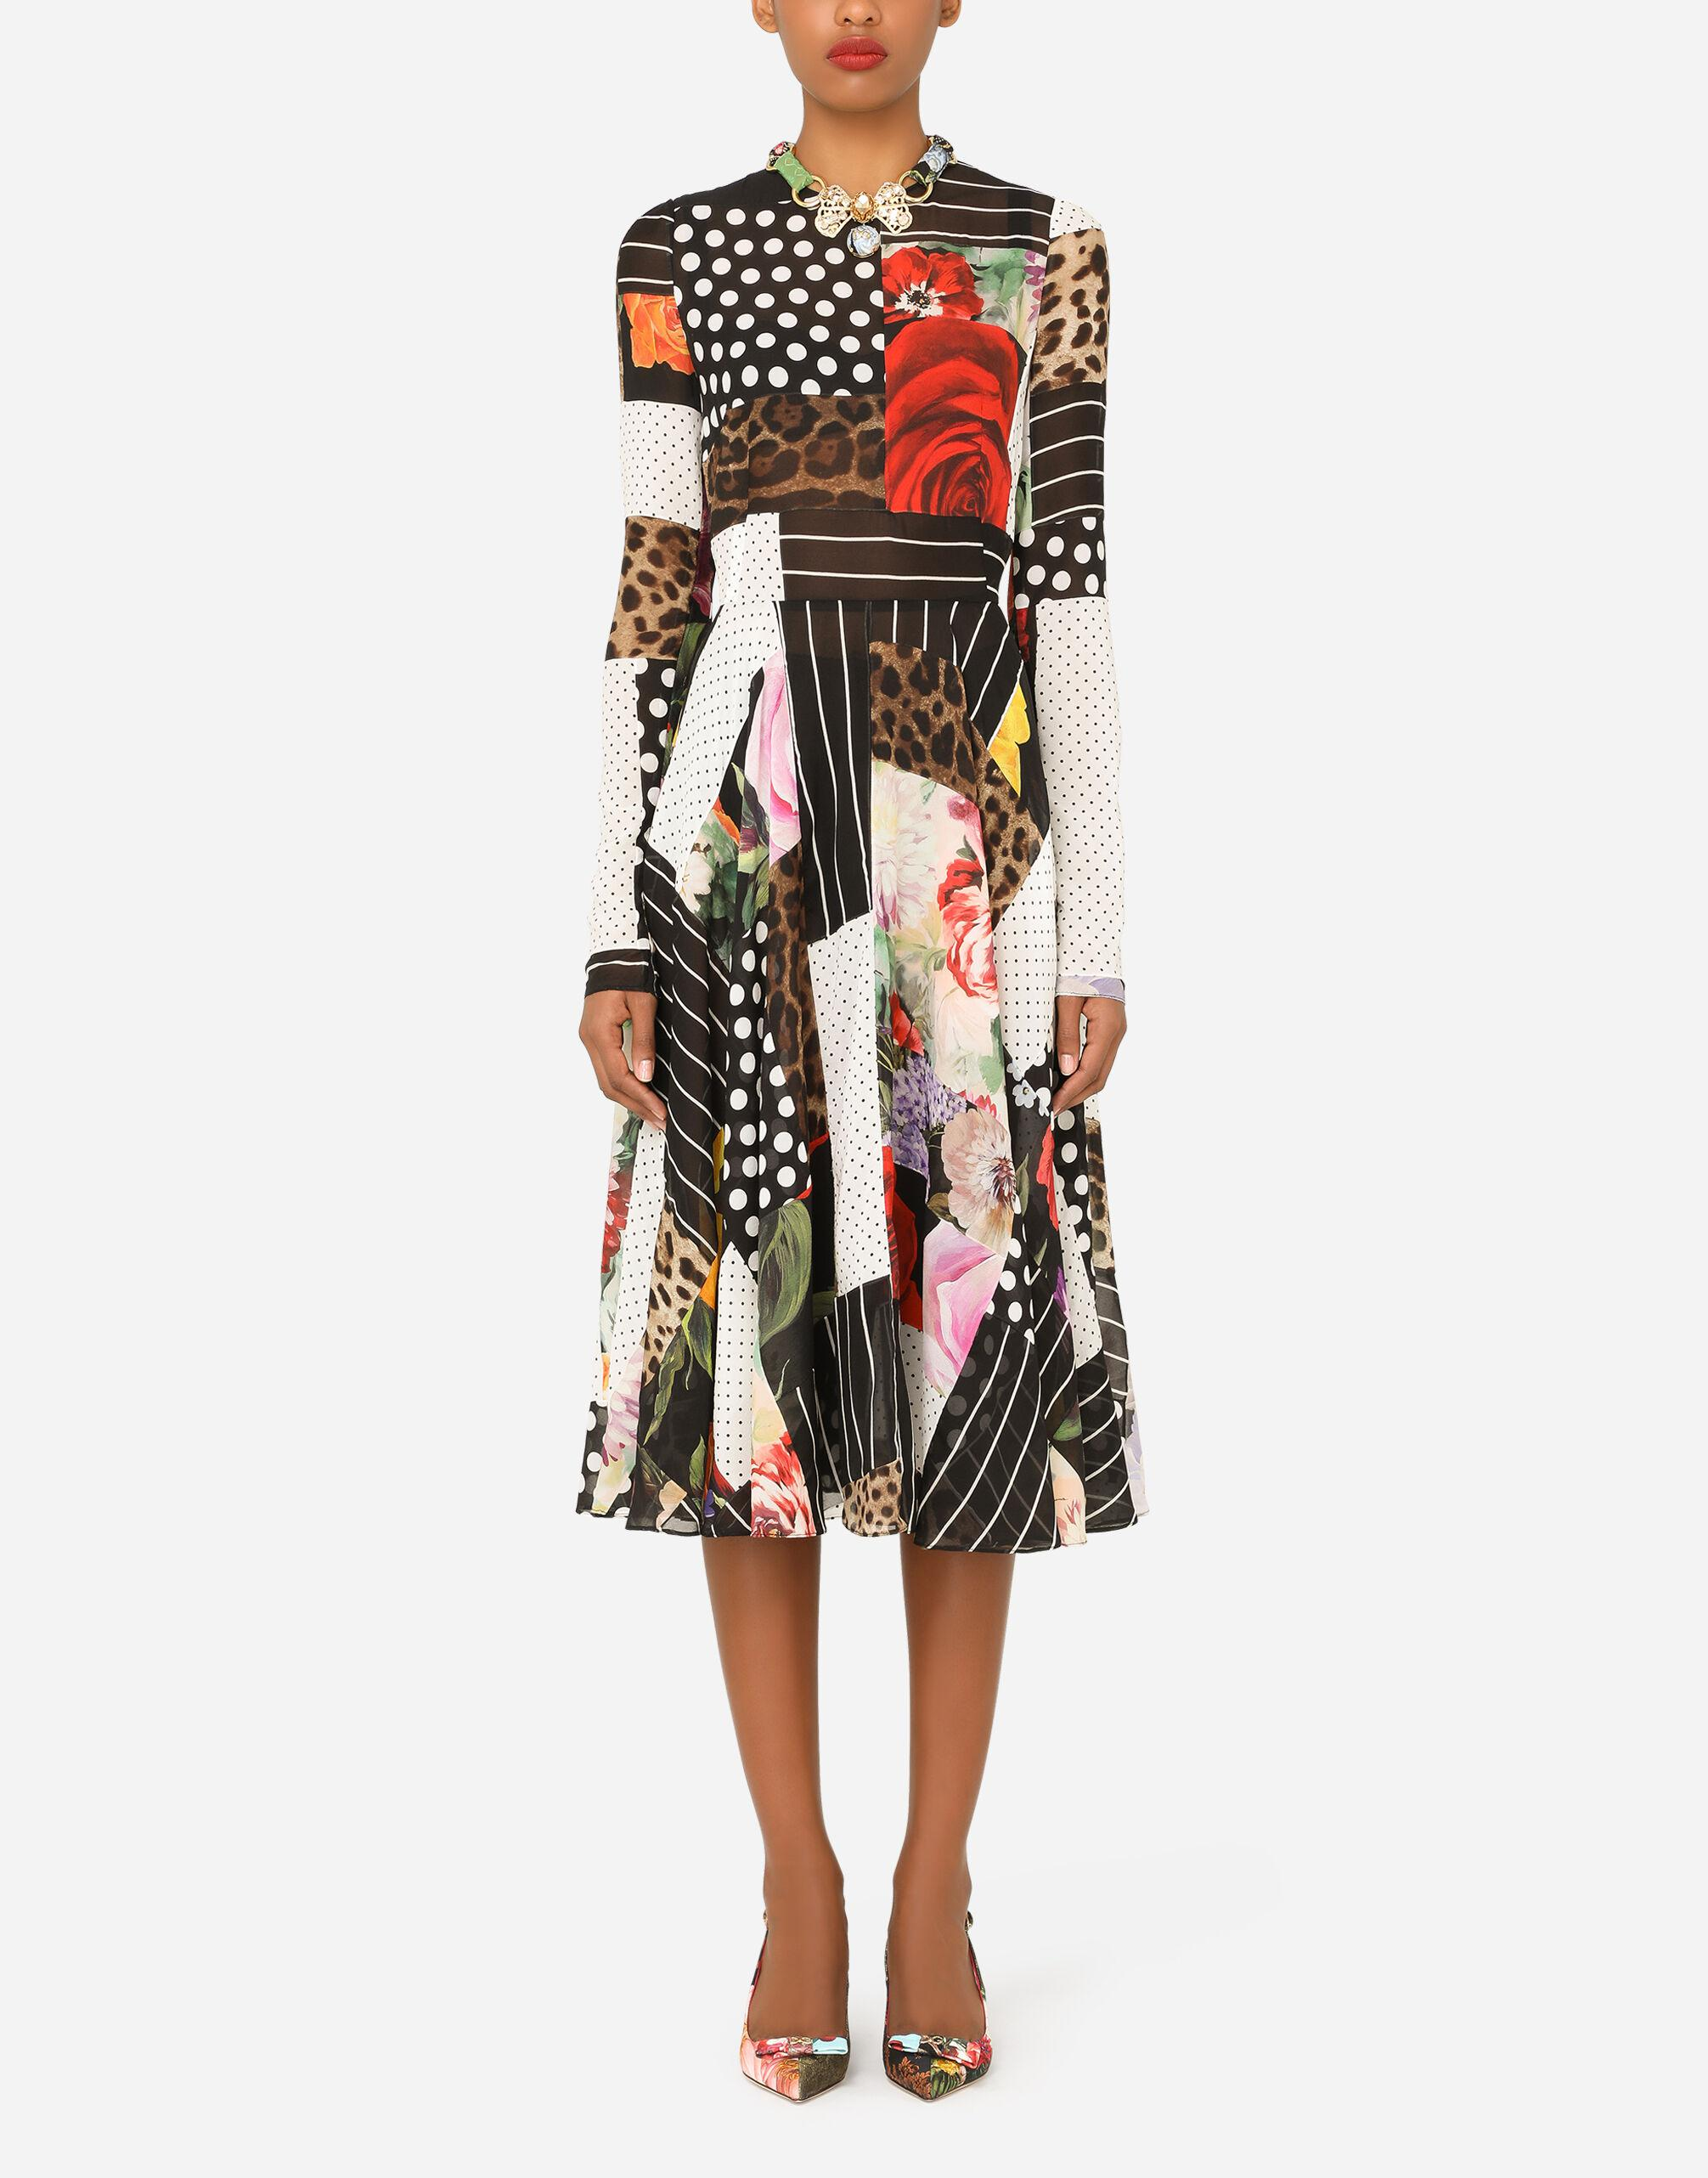 Patchwork chiffon and georgette calf-length dress